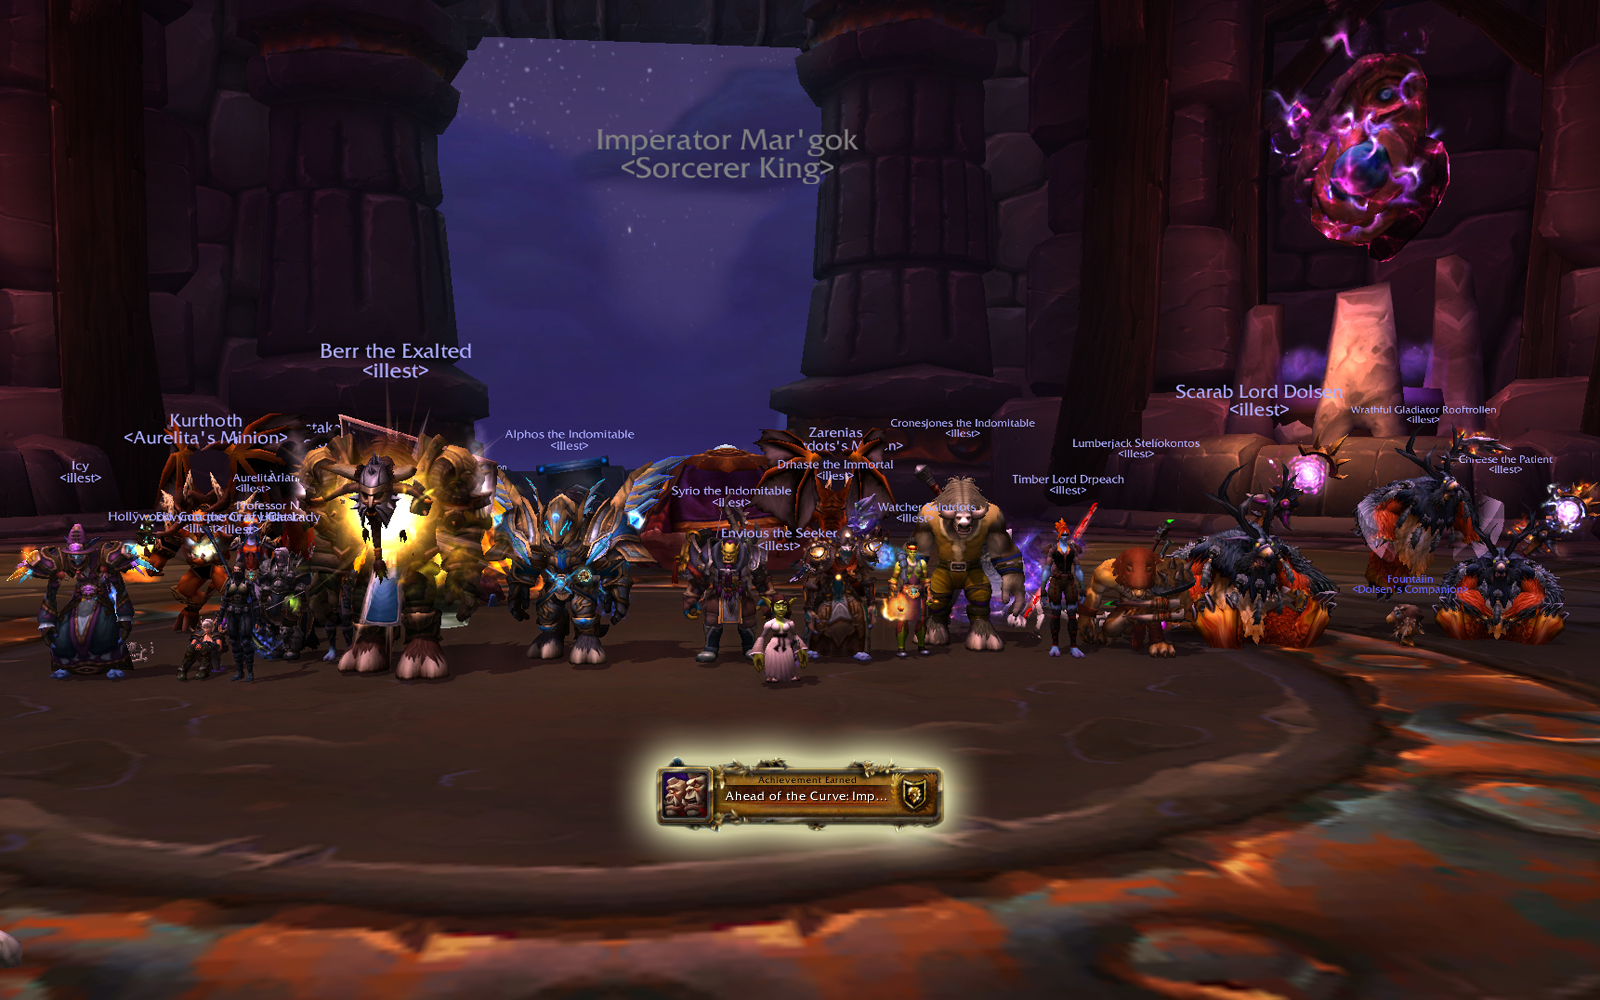 Heroic Highmaul: Imperator Mar'gok